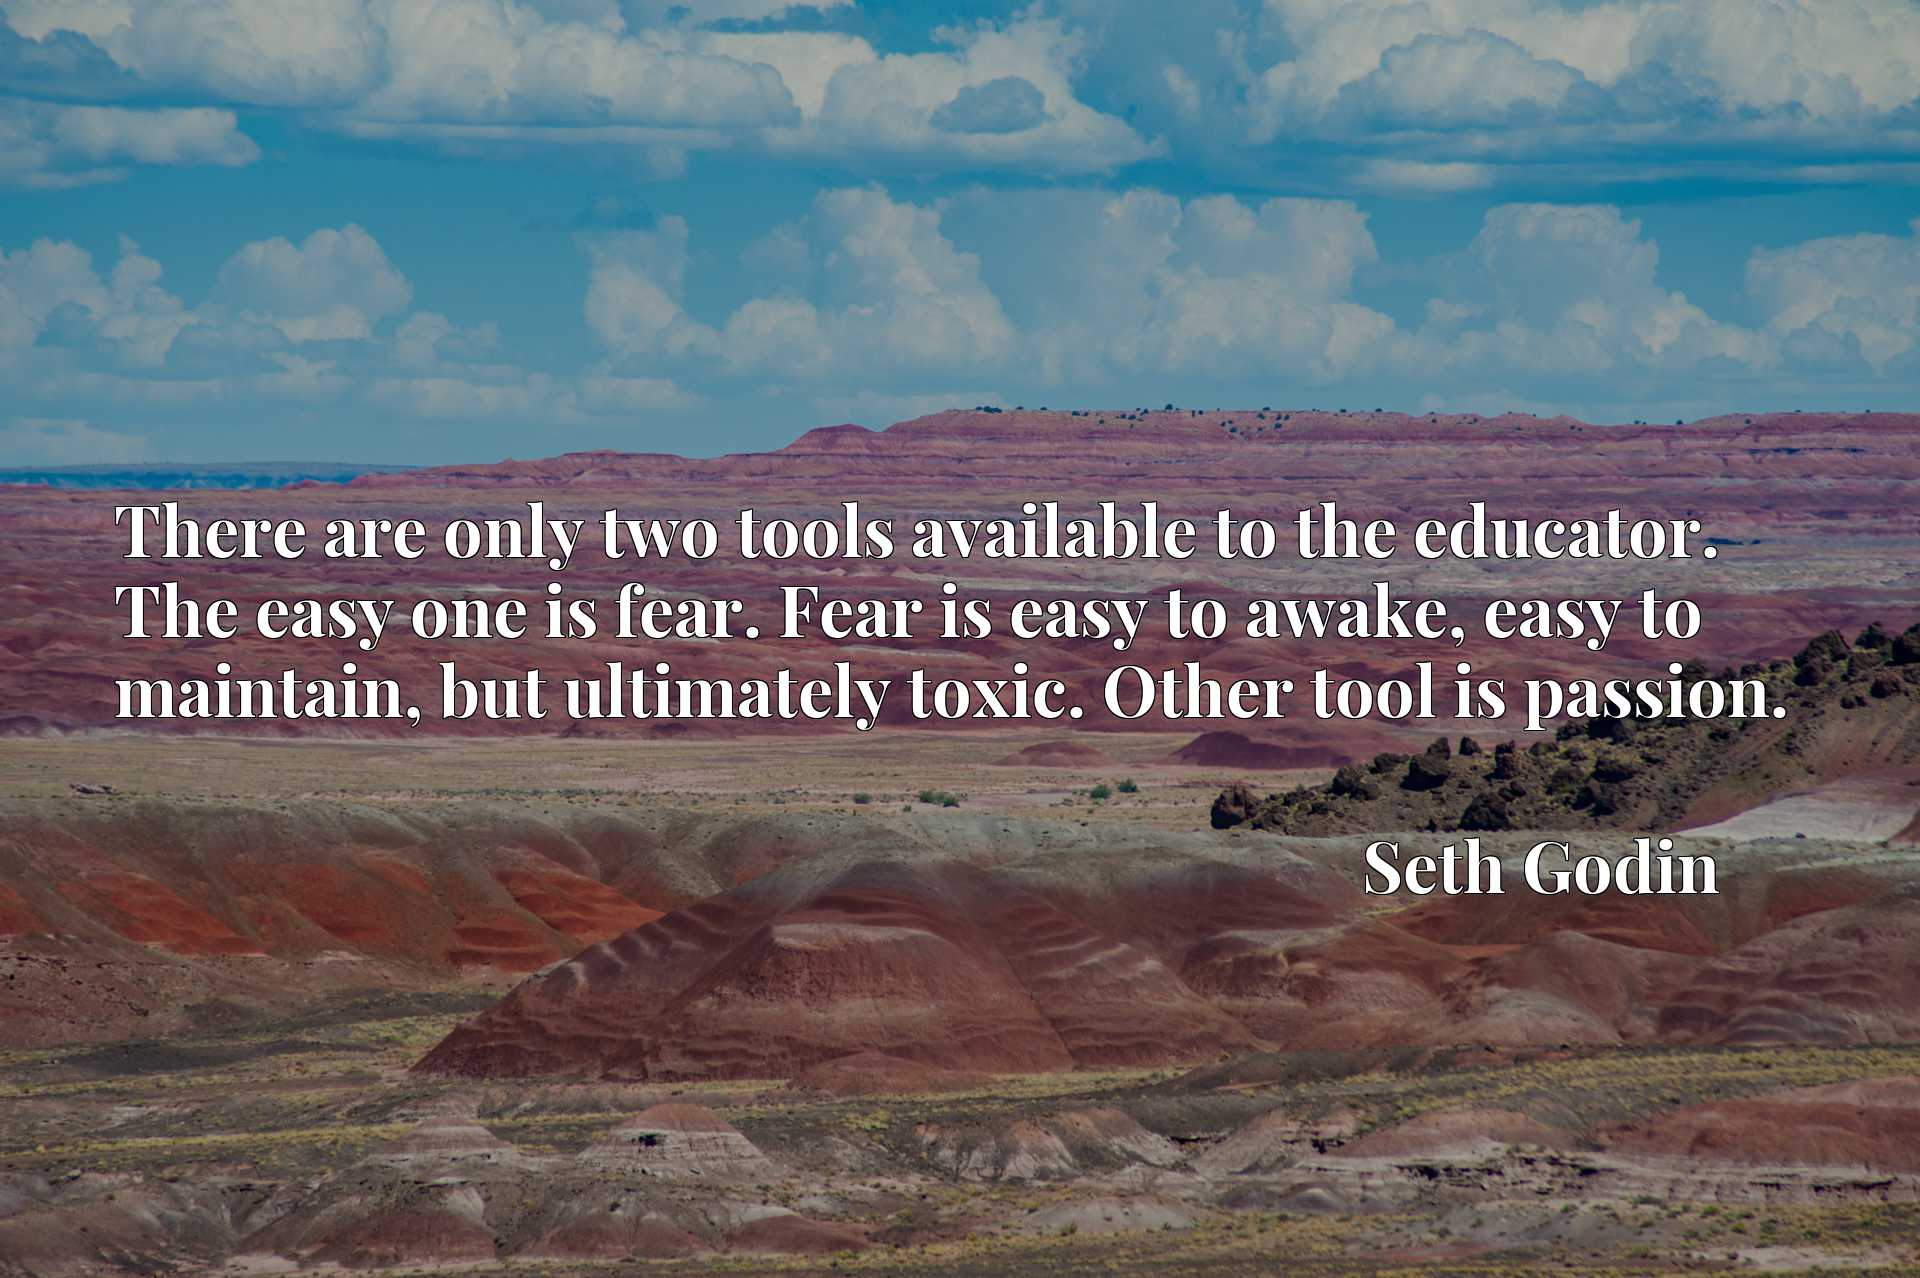 There are only two tools available to the educator. The easy one is fear. Fear is easy to awake, easy to maintain, but ultimately toxic. Other tool is passion.